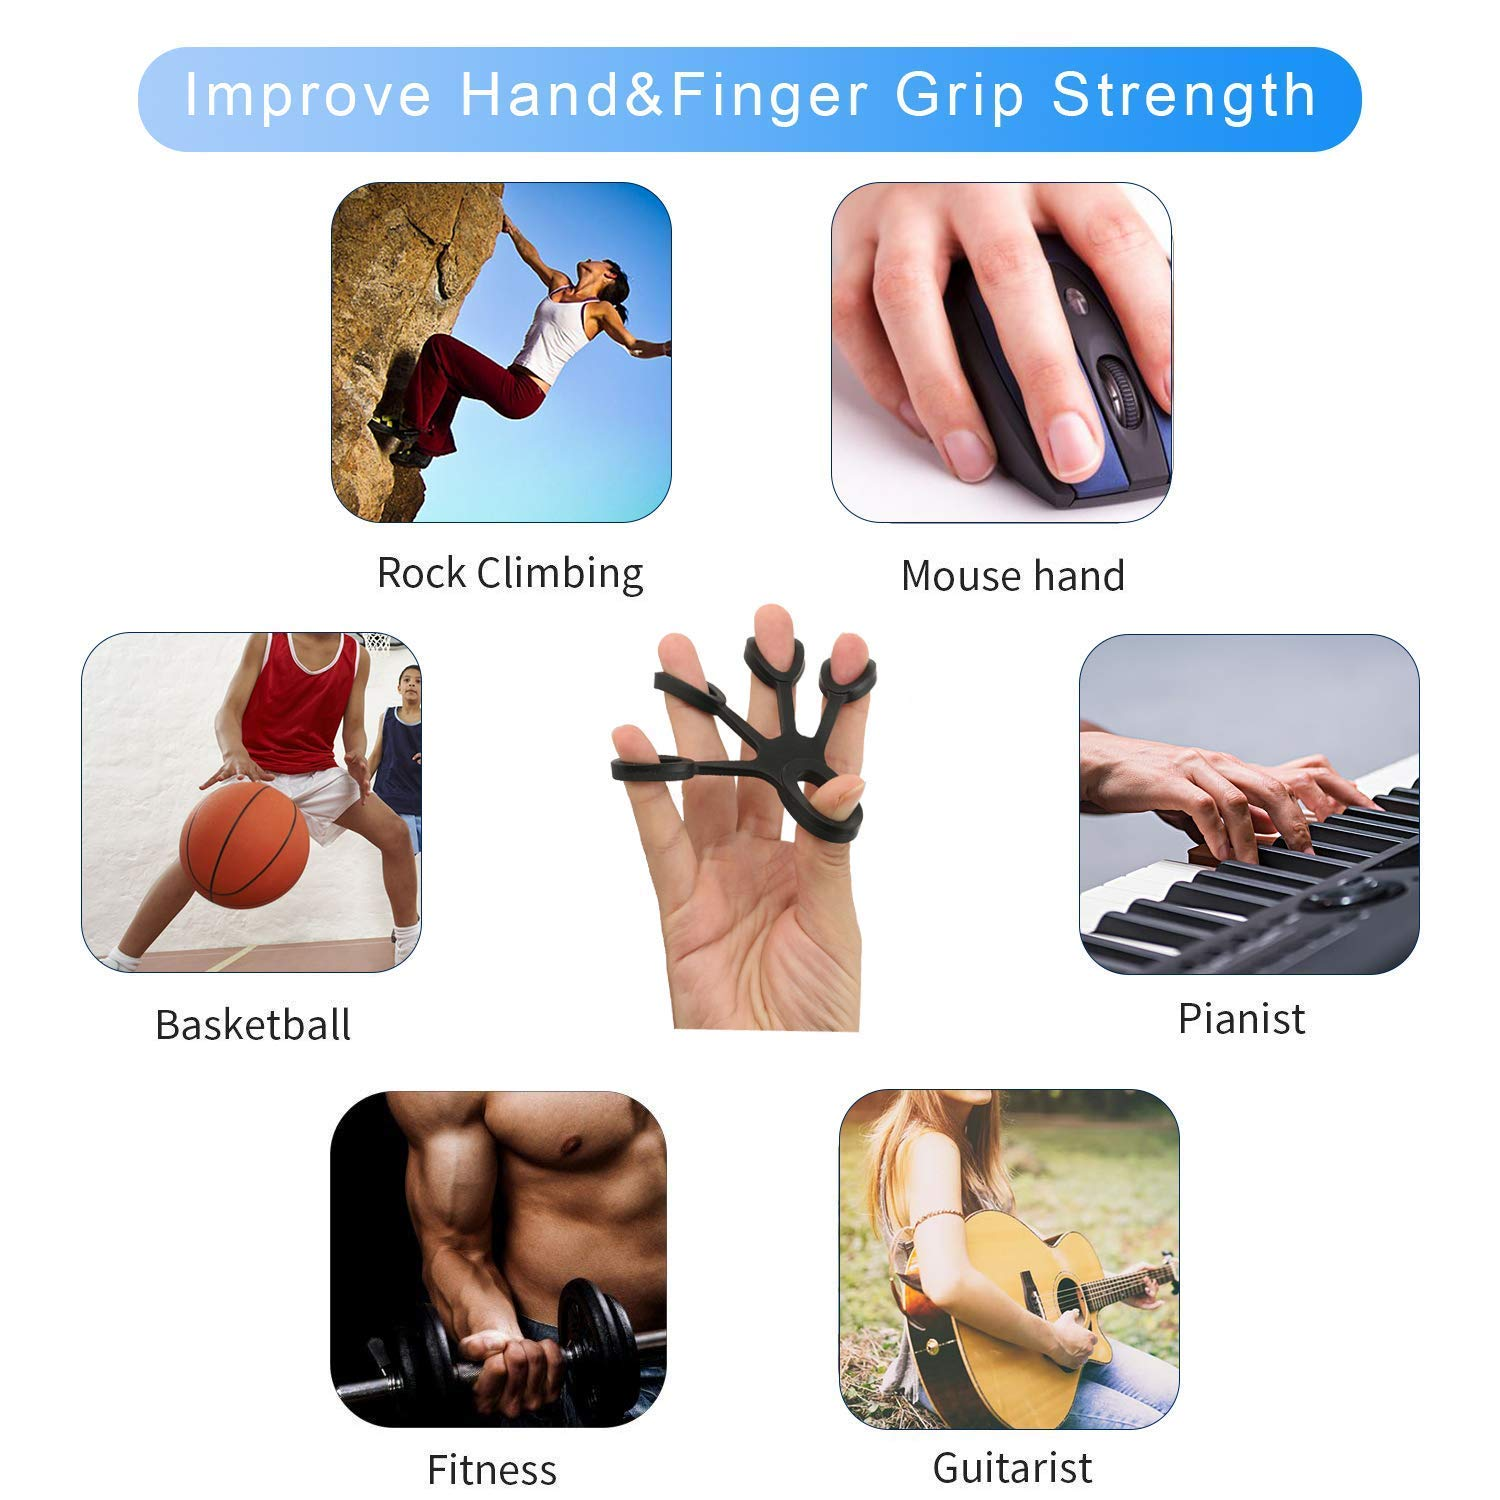 Finger Stretcher,6 Pack Hand Bands Resistance with Free Bag,New Material Grip Strength Trainer for Arthritis Carpal Tunnel Exercise Guitar and Rock Climbing KINGSOO Hand Grip Strengthener